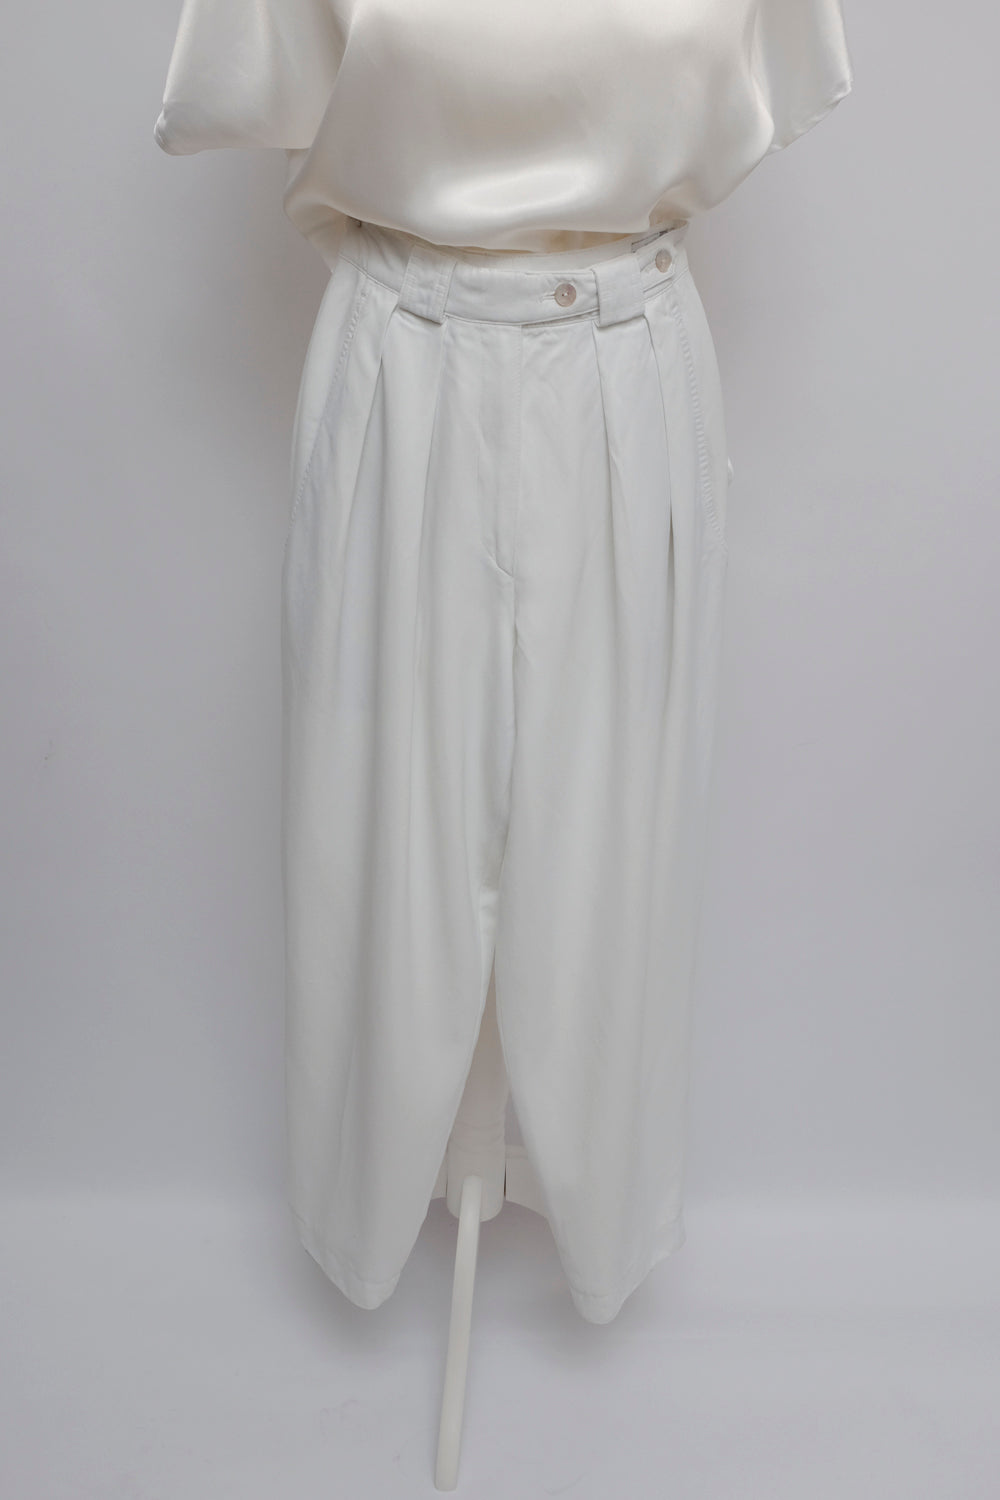 0015_PLEATED WHITE VINTAGE PANTS